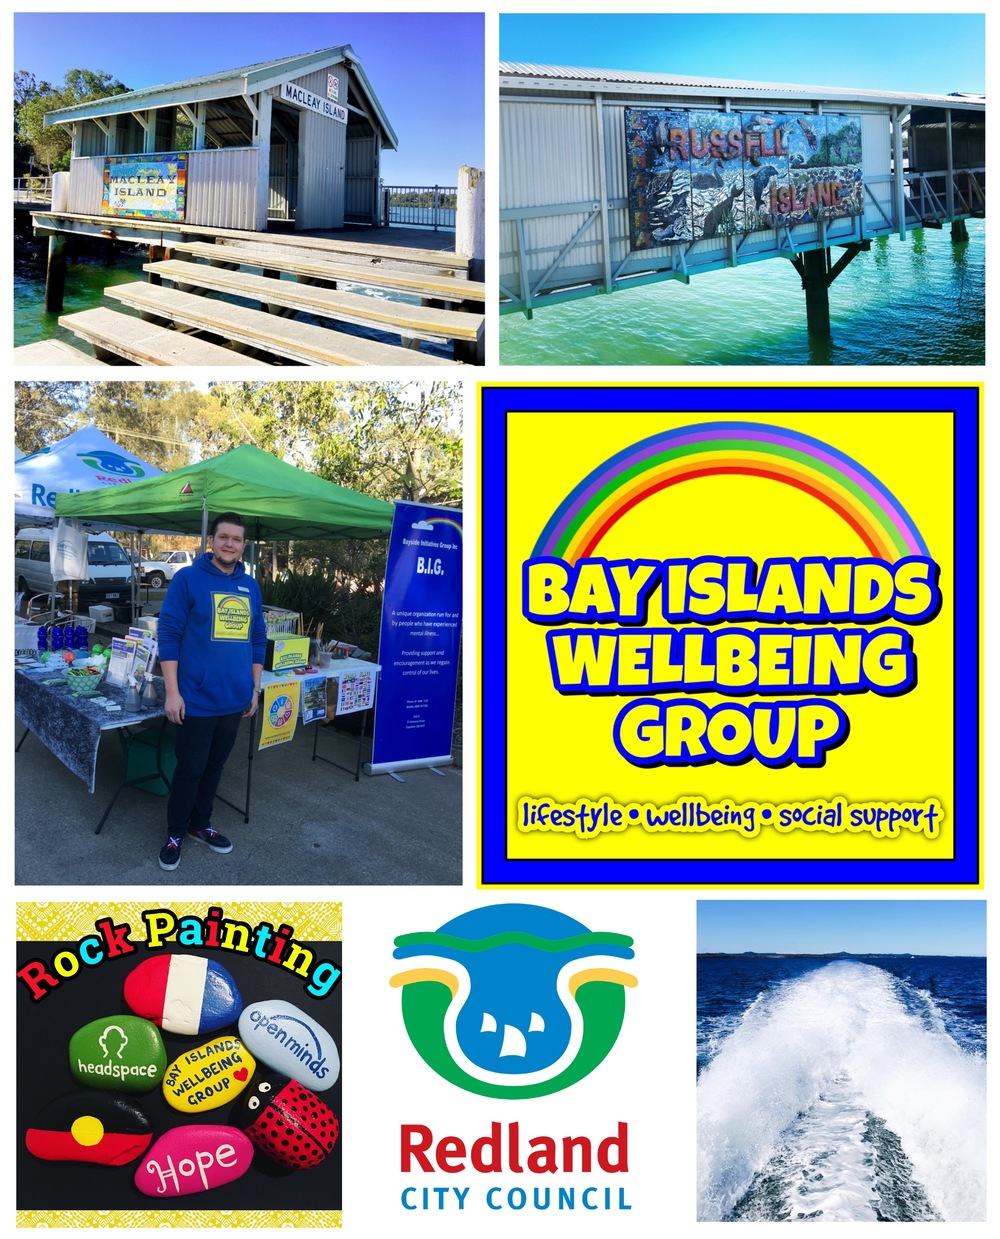 Bay Islands Wellbeing Group - Peer Support group for residents of the Southern Moreton Bay Islands